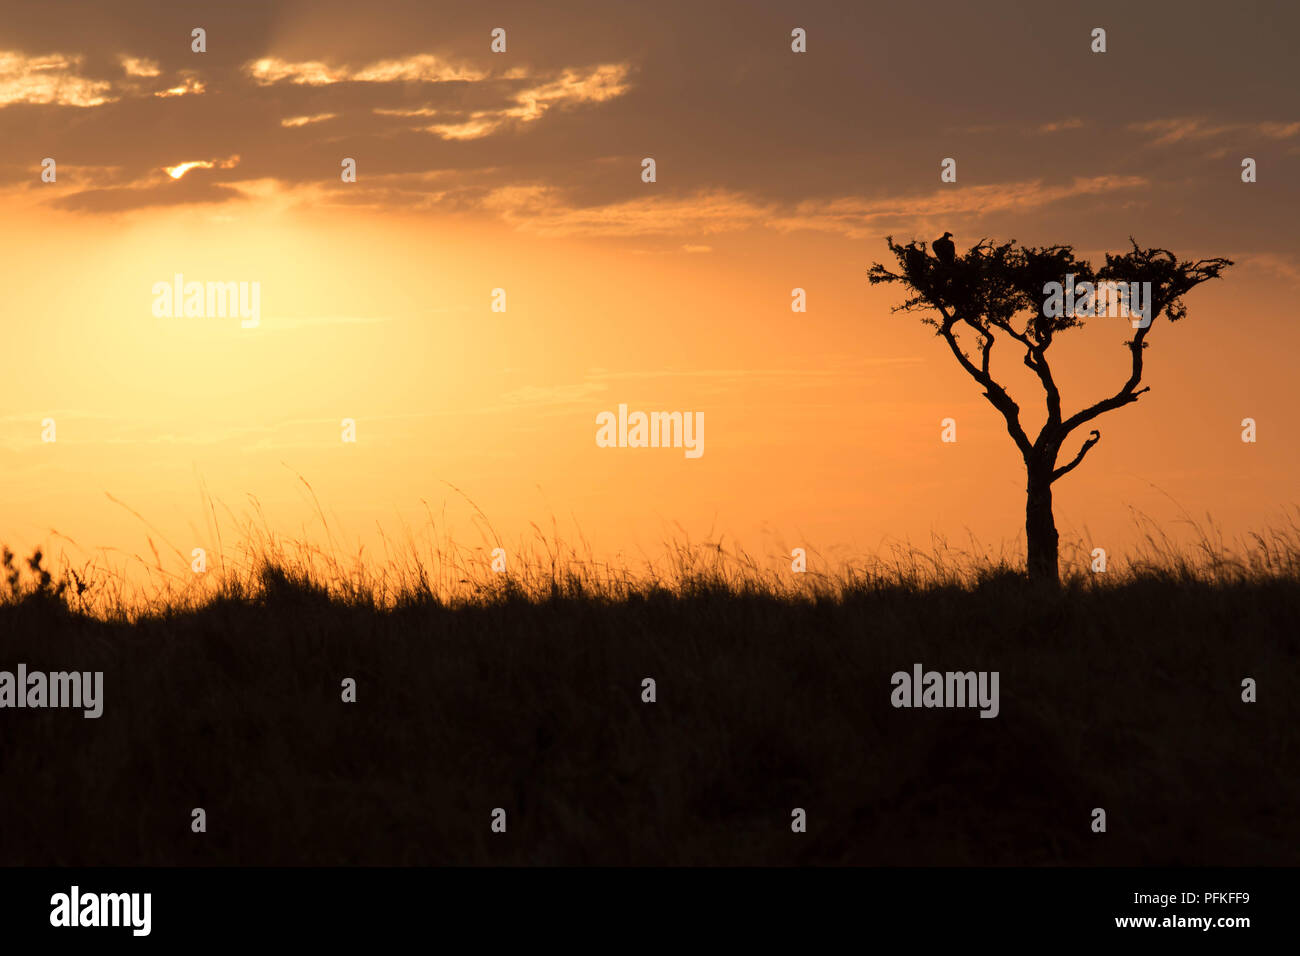 Masai Mara, Kenya, Game Safari - Stock Image